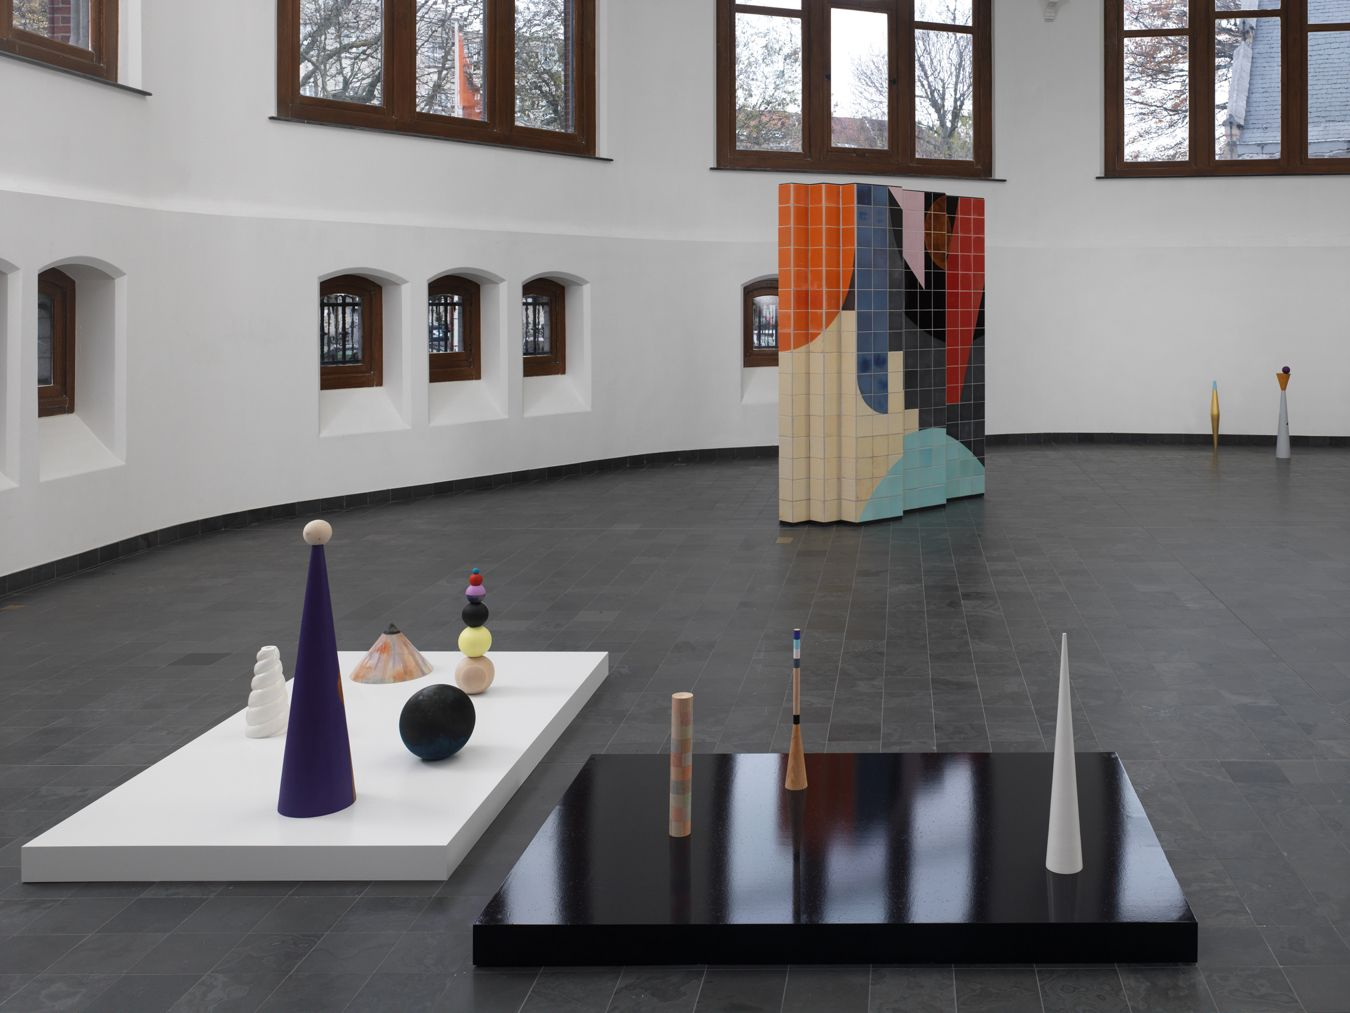 Furniture (Installation view), Kiosk, Belgium